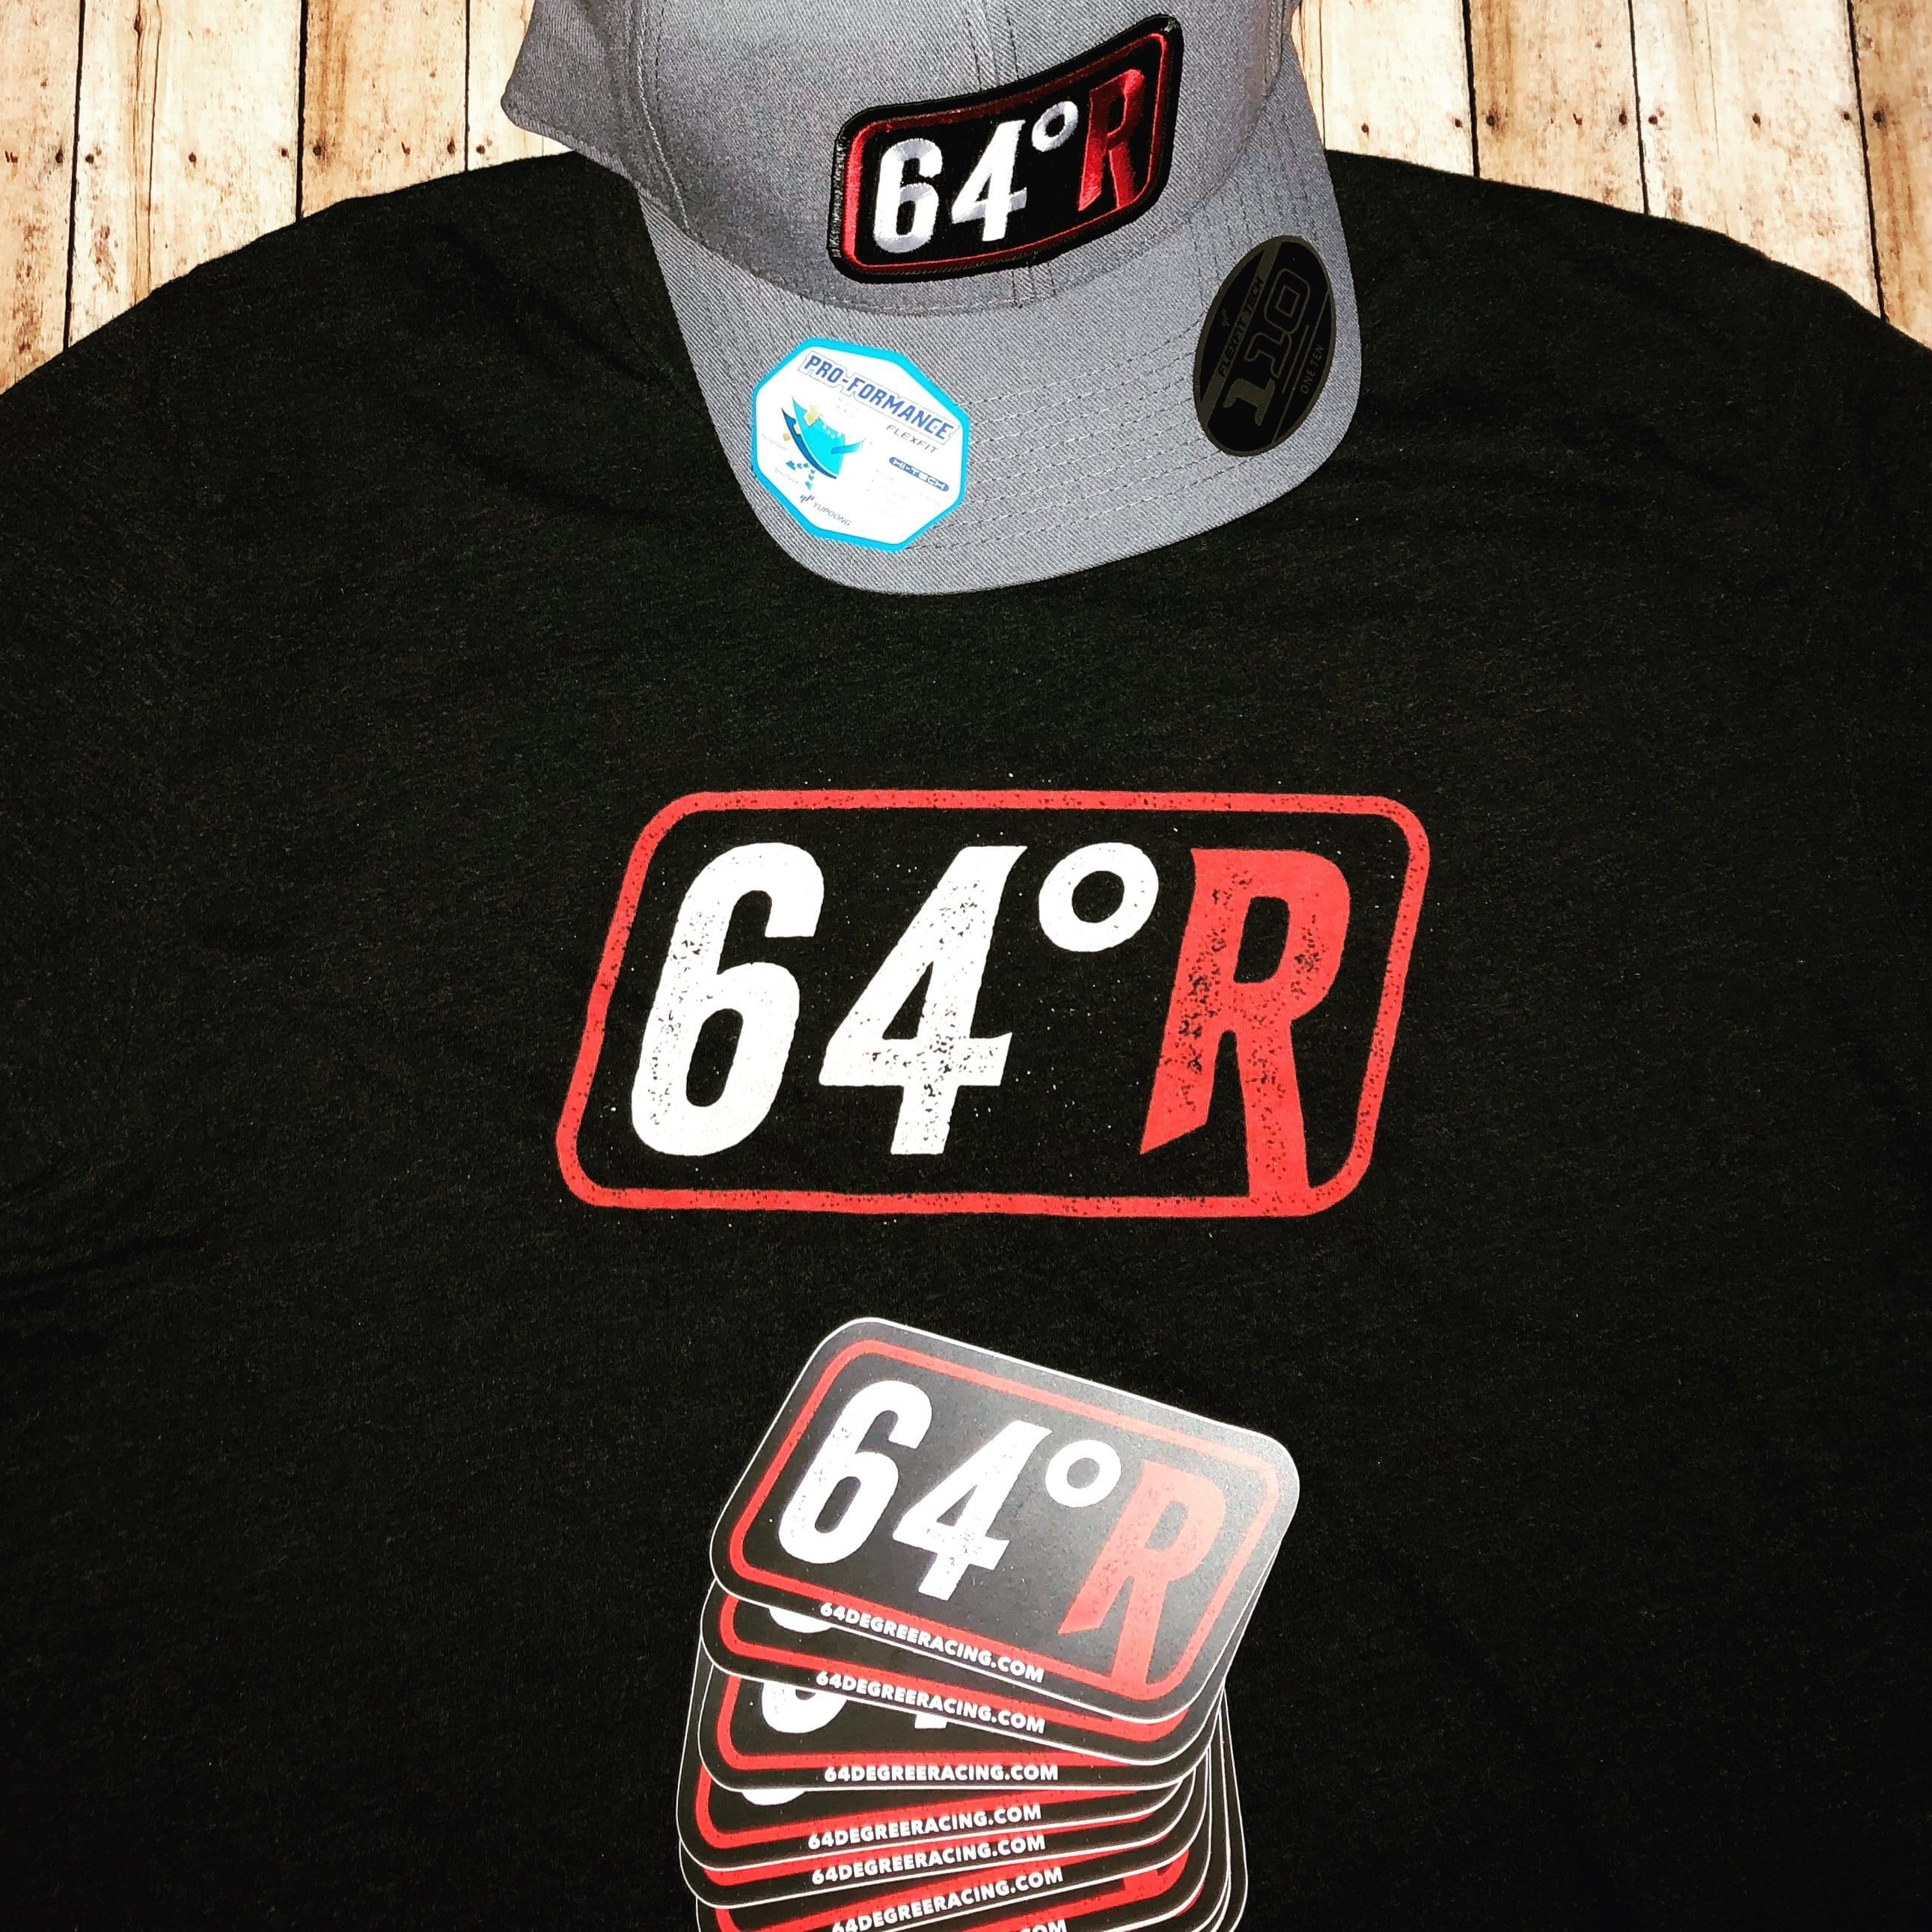 "64 Degree Racing 5"" Racing decal"